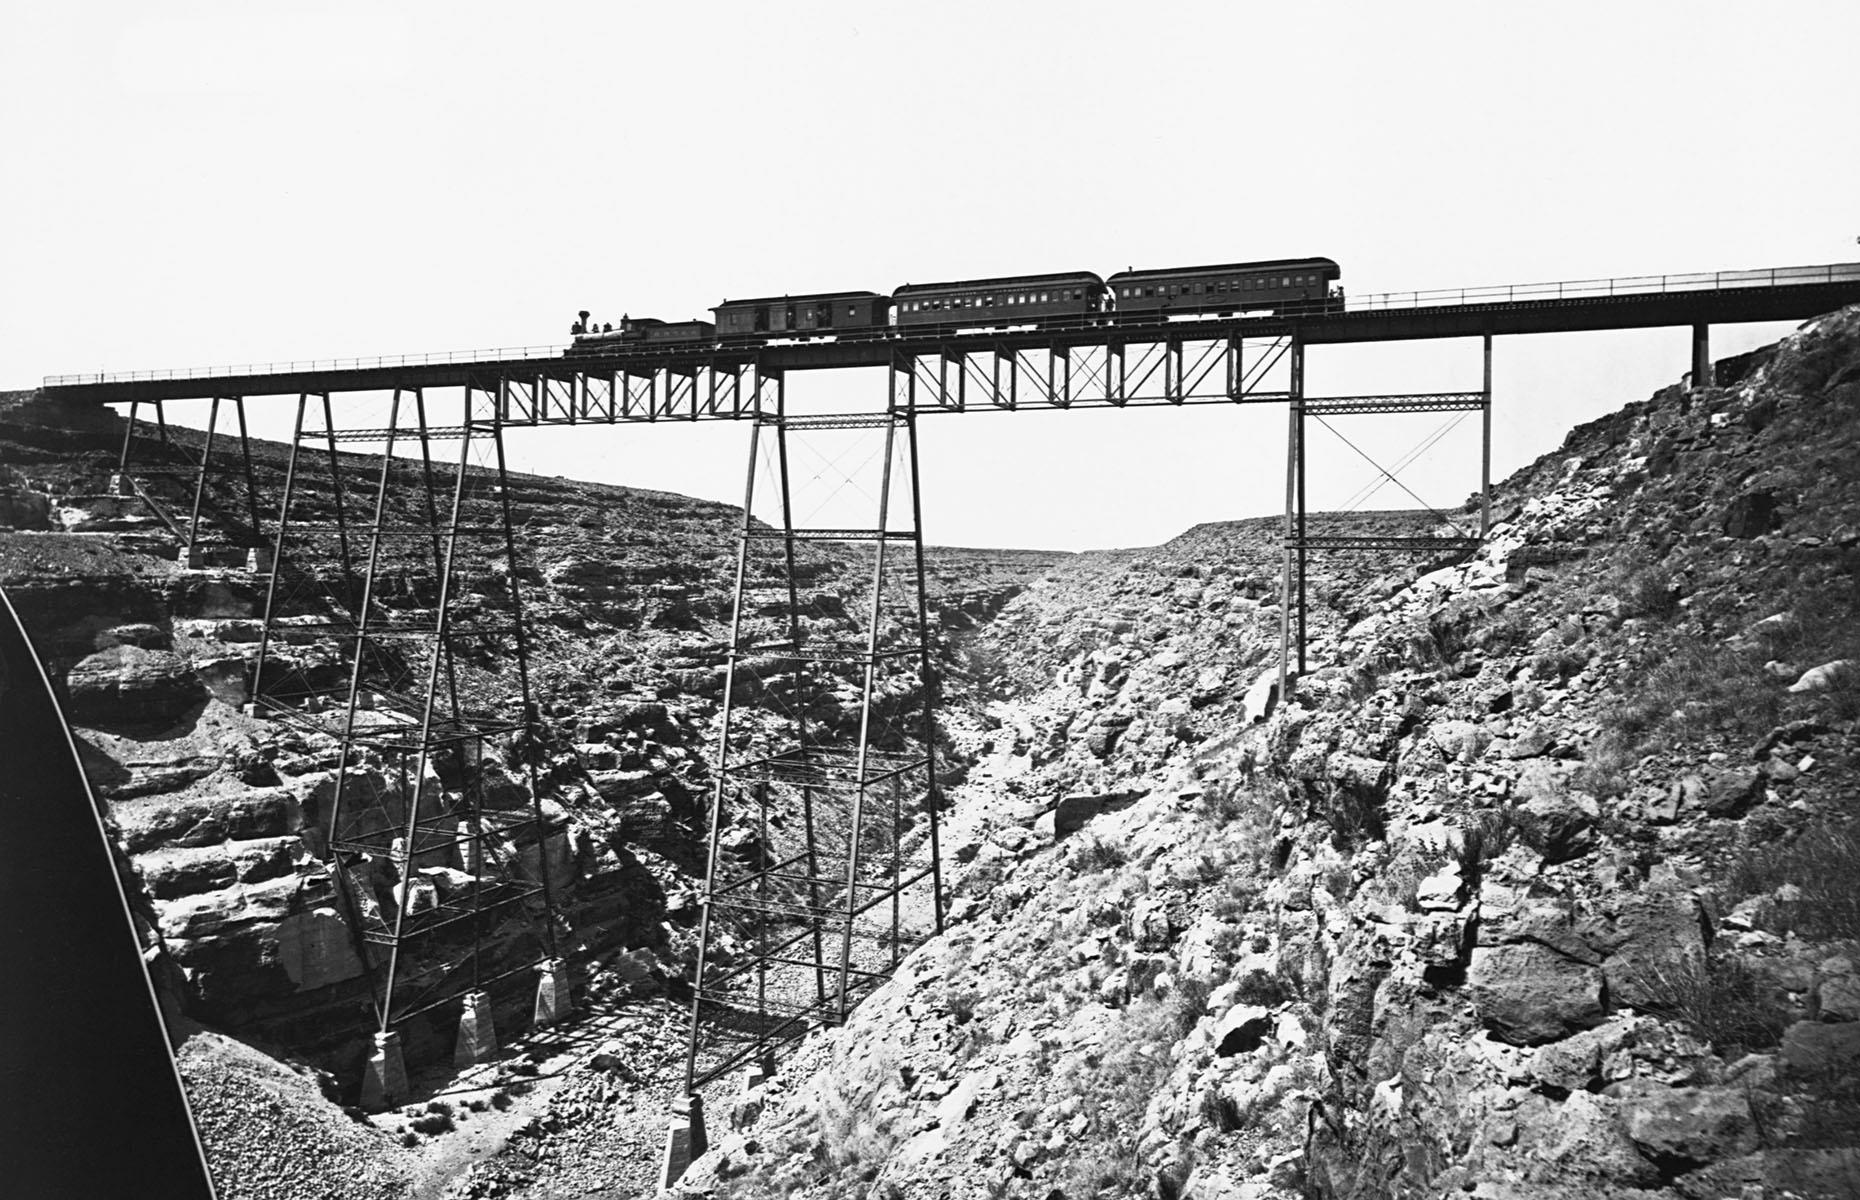 Slide 3 of 32: One of the biggest obstacles railroads faced in the early days was traversing the often challenging landscapes. One such place was Canyon Diablo in Arizona – this is the earliest inception of a railroad bridge across the canyon photographed at some point in the 1870s. The current steel bridge was finished in 1903, but the foundations of the original trestle bridge can still be seen today.